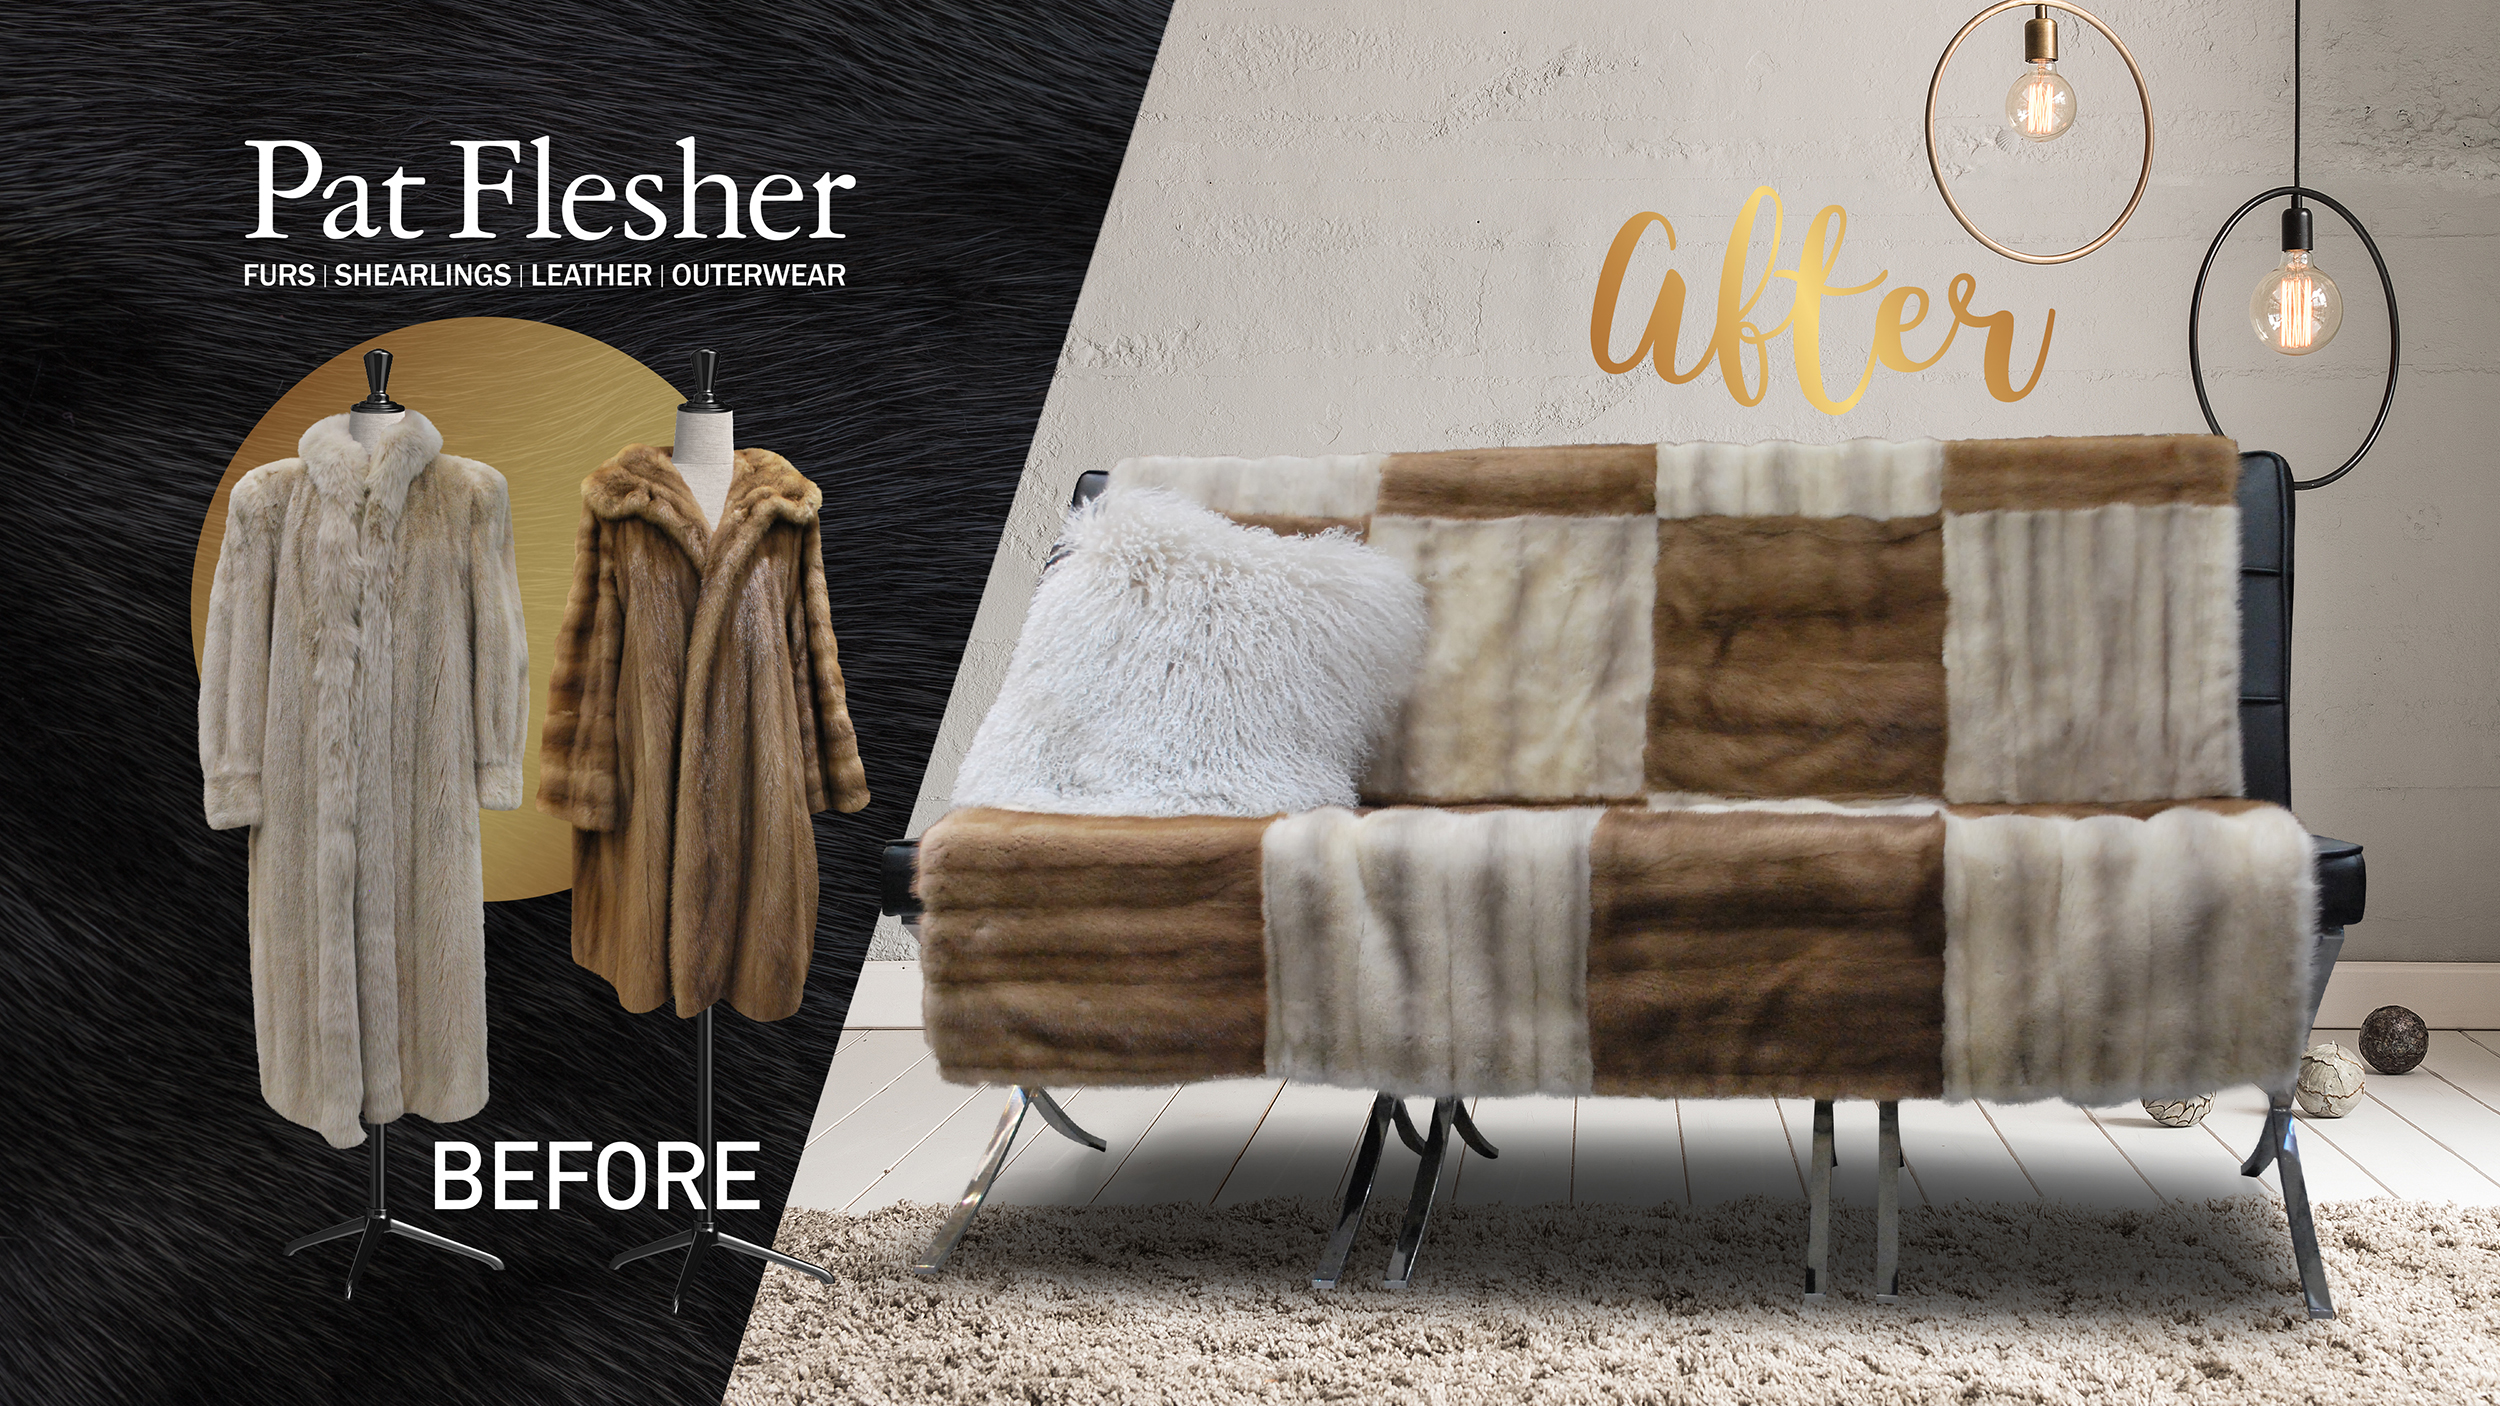 PatFlesher-furs-before-after-3.jpg